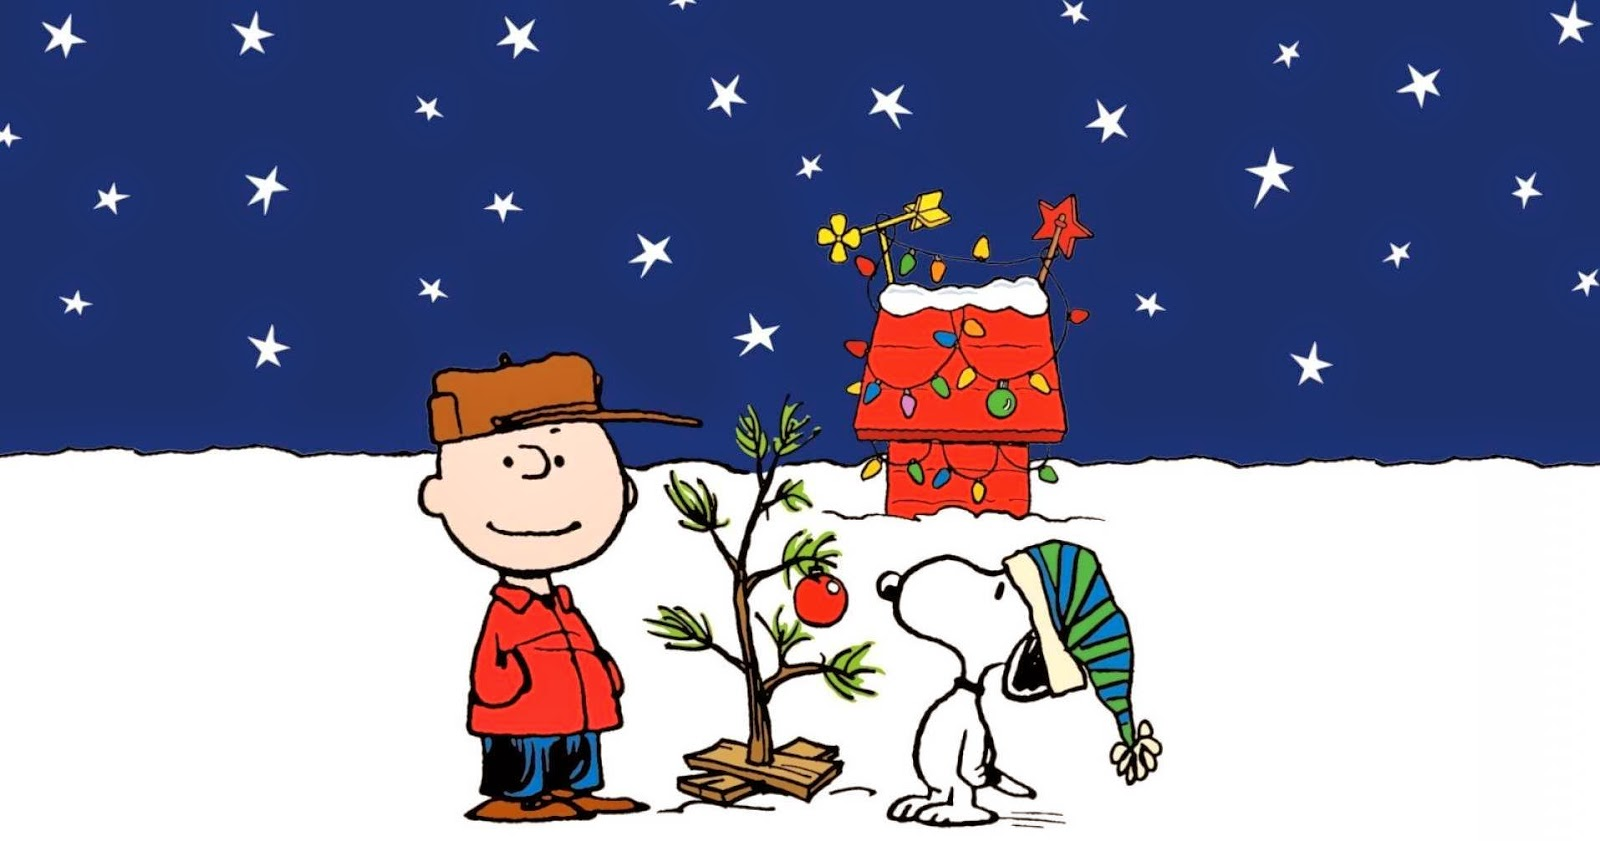 The holiday site charlie brown christmas clip art and coloring pages